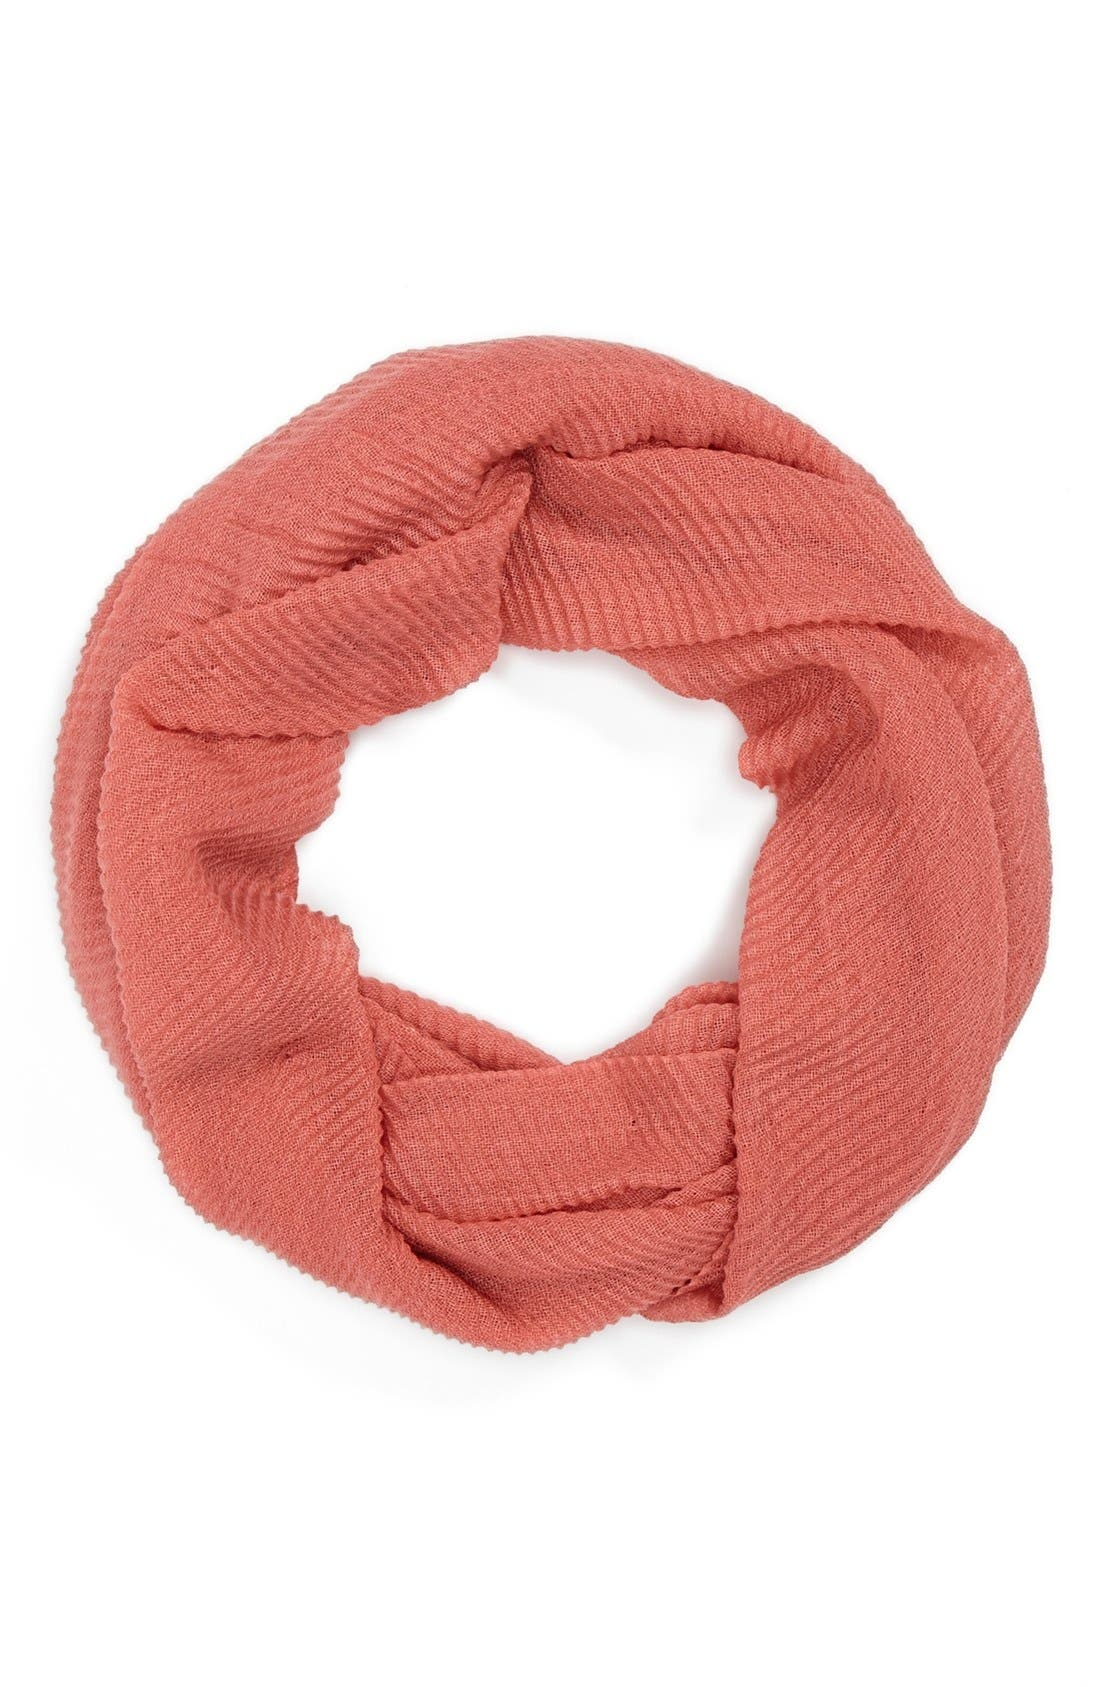 Alternate Image 1 Selected - David & Young Infinity Scarf (Juniors) (Online Only)